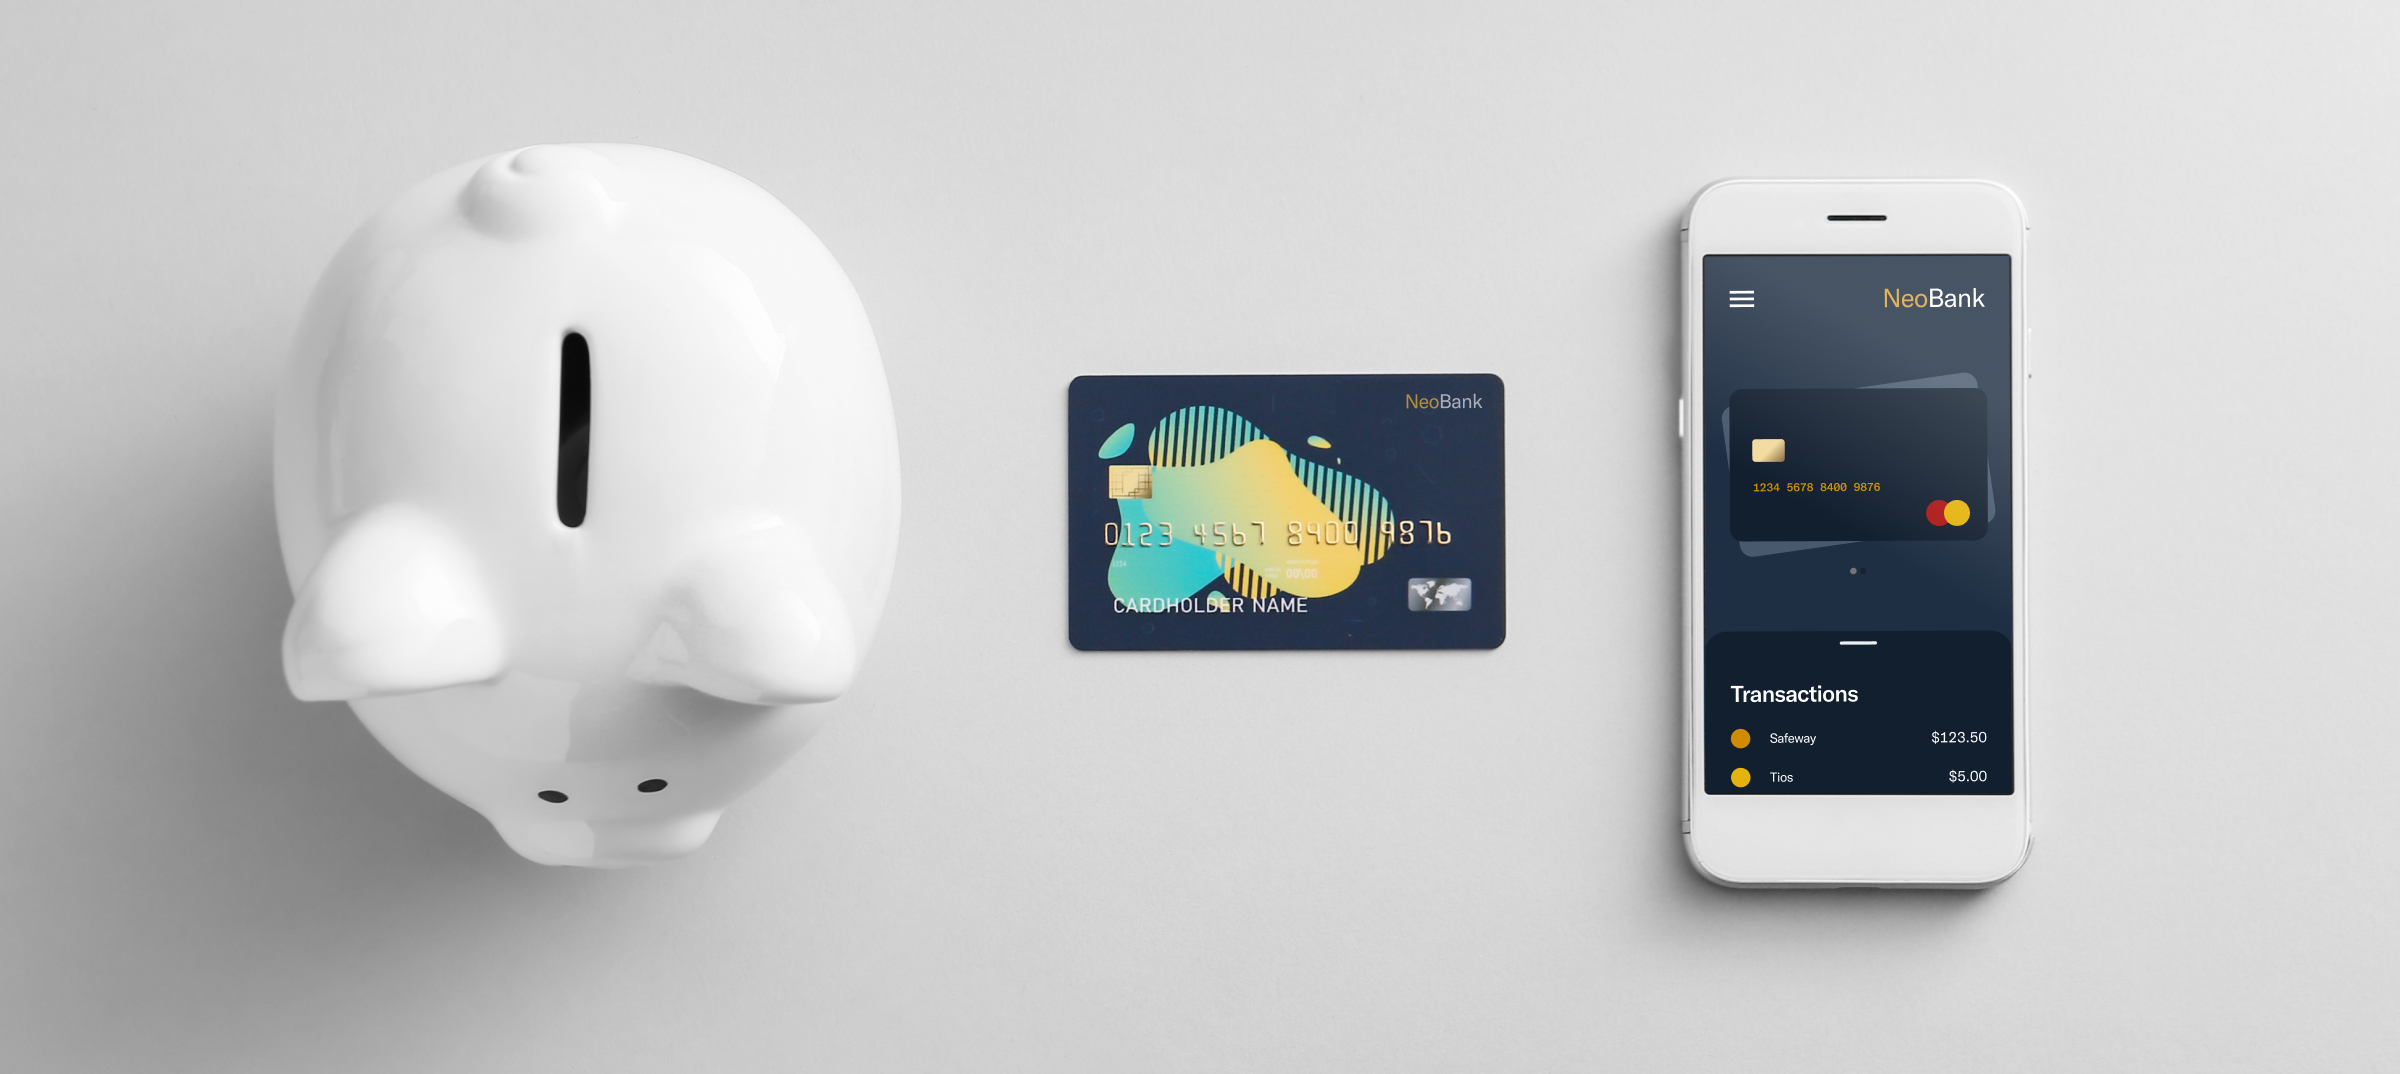 Piggy bank, debit card, and neobank mobile application